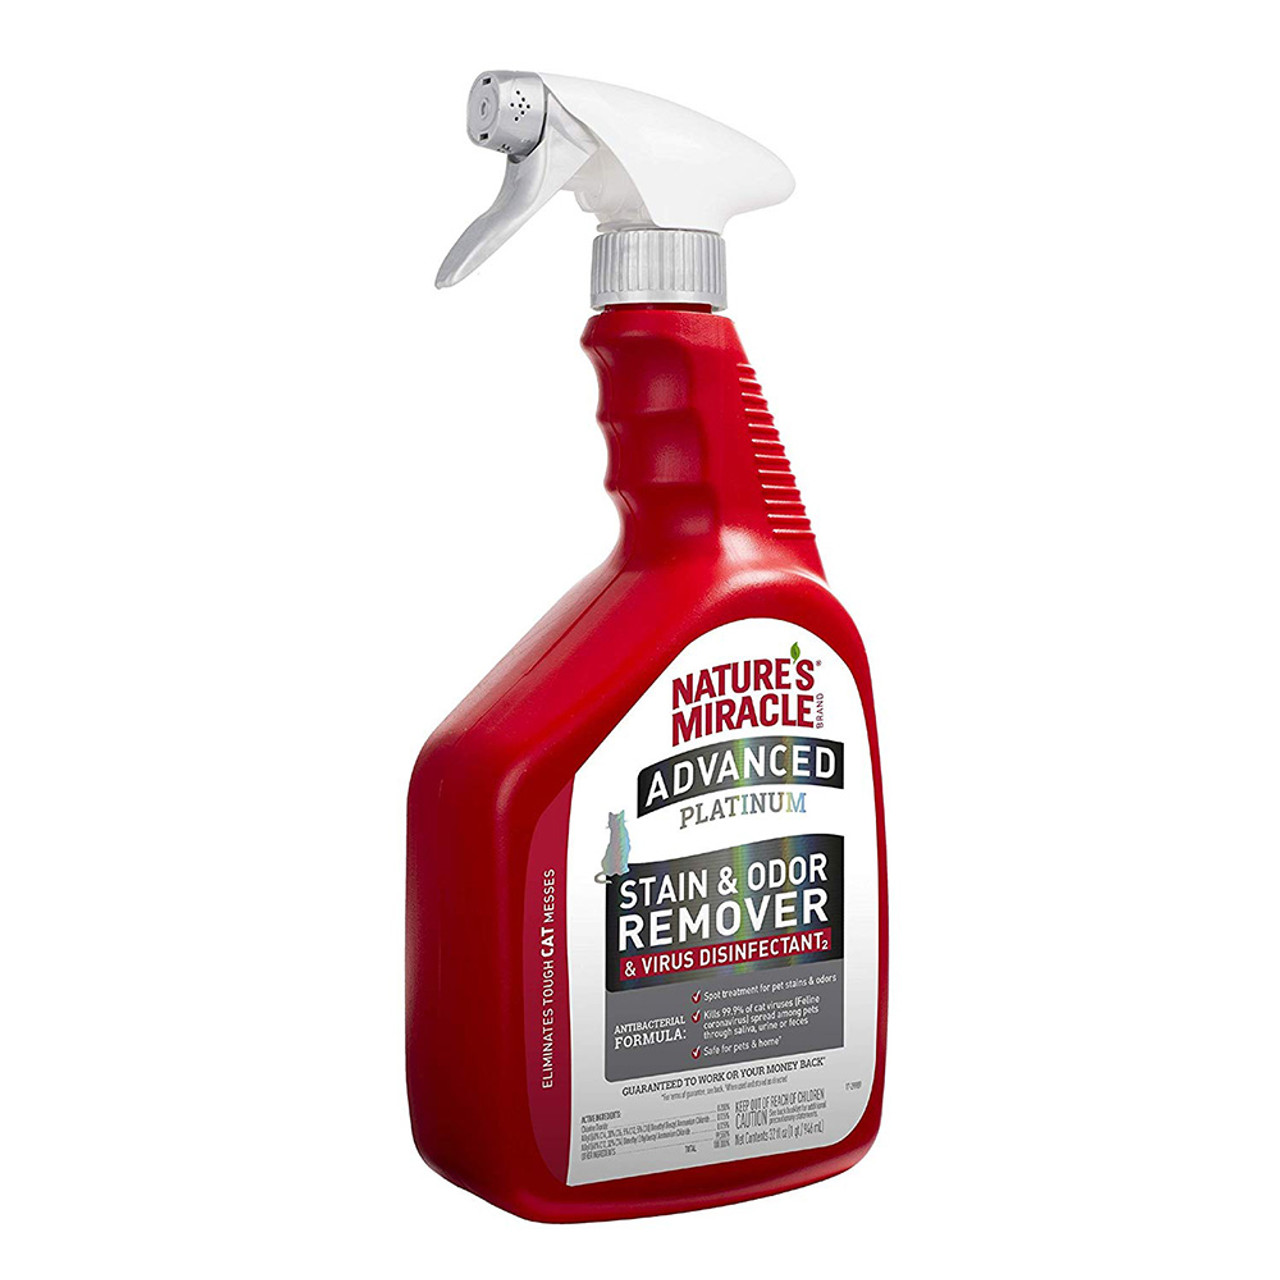 Nature's Miracle Advanced Platinum Stain & Odor Remover & Virus Disinfectant for Cats